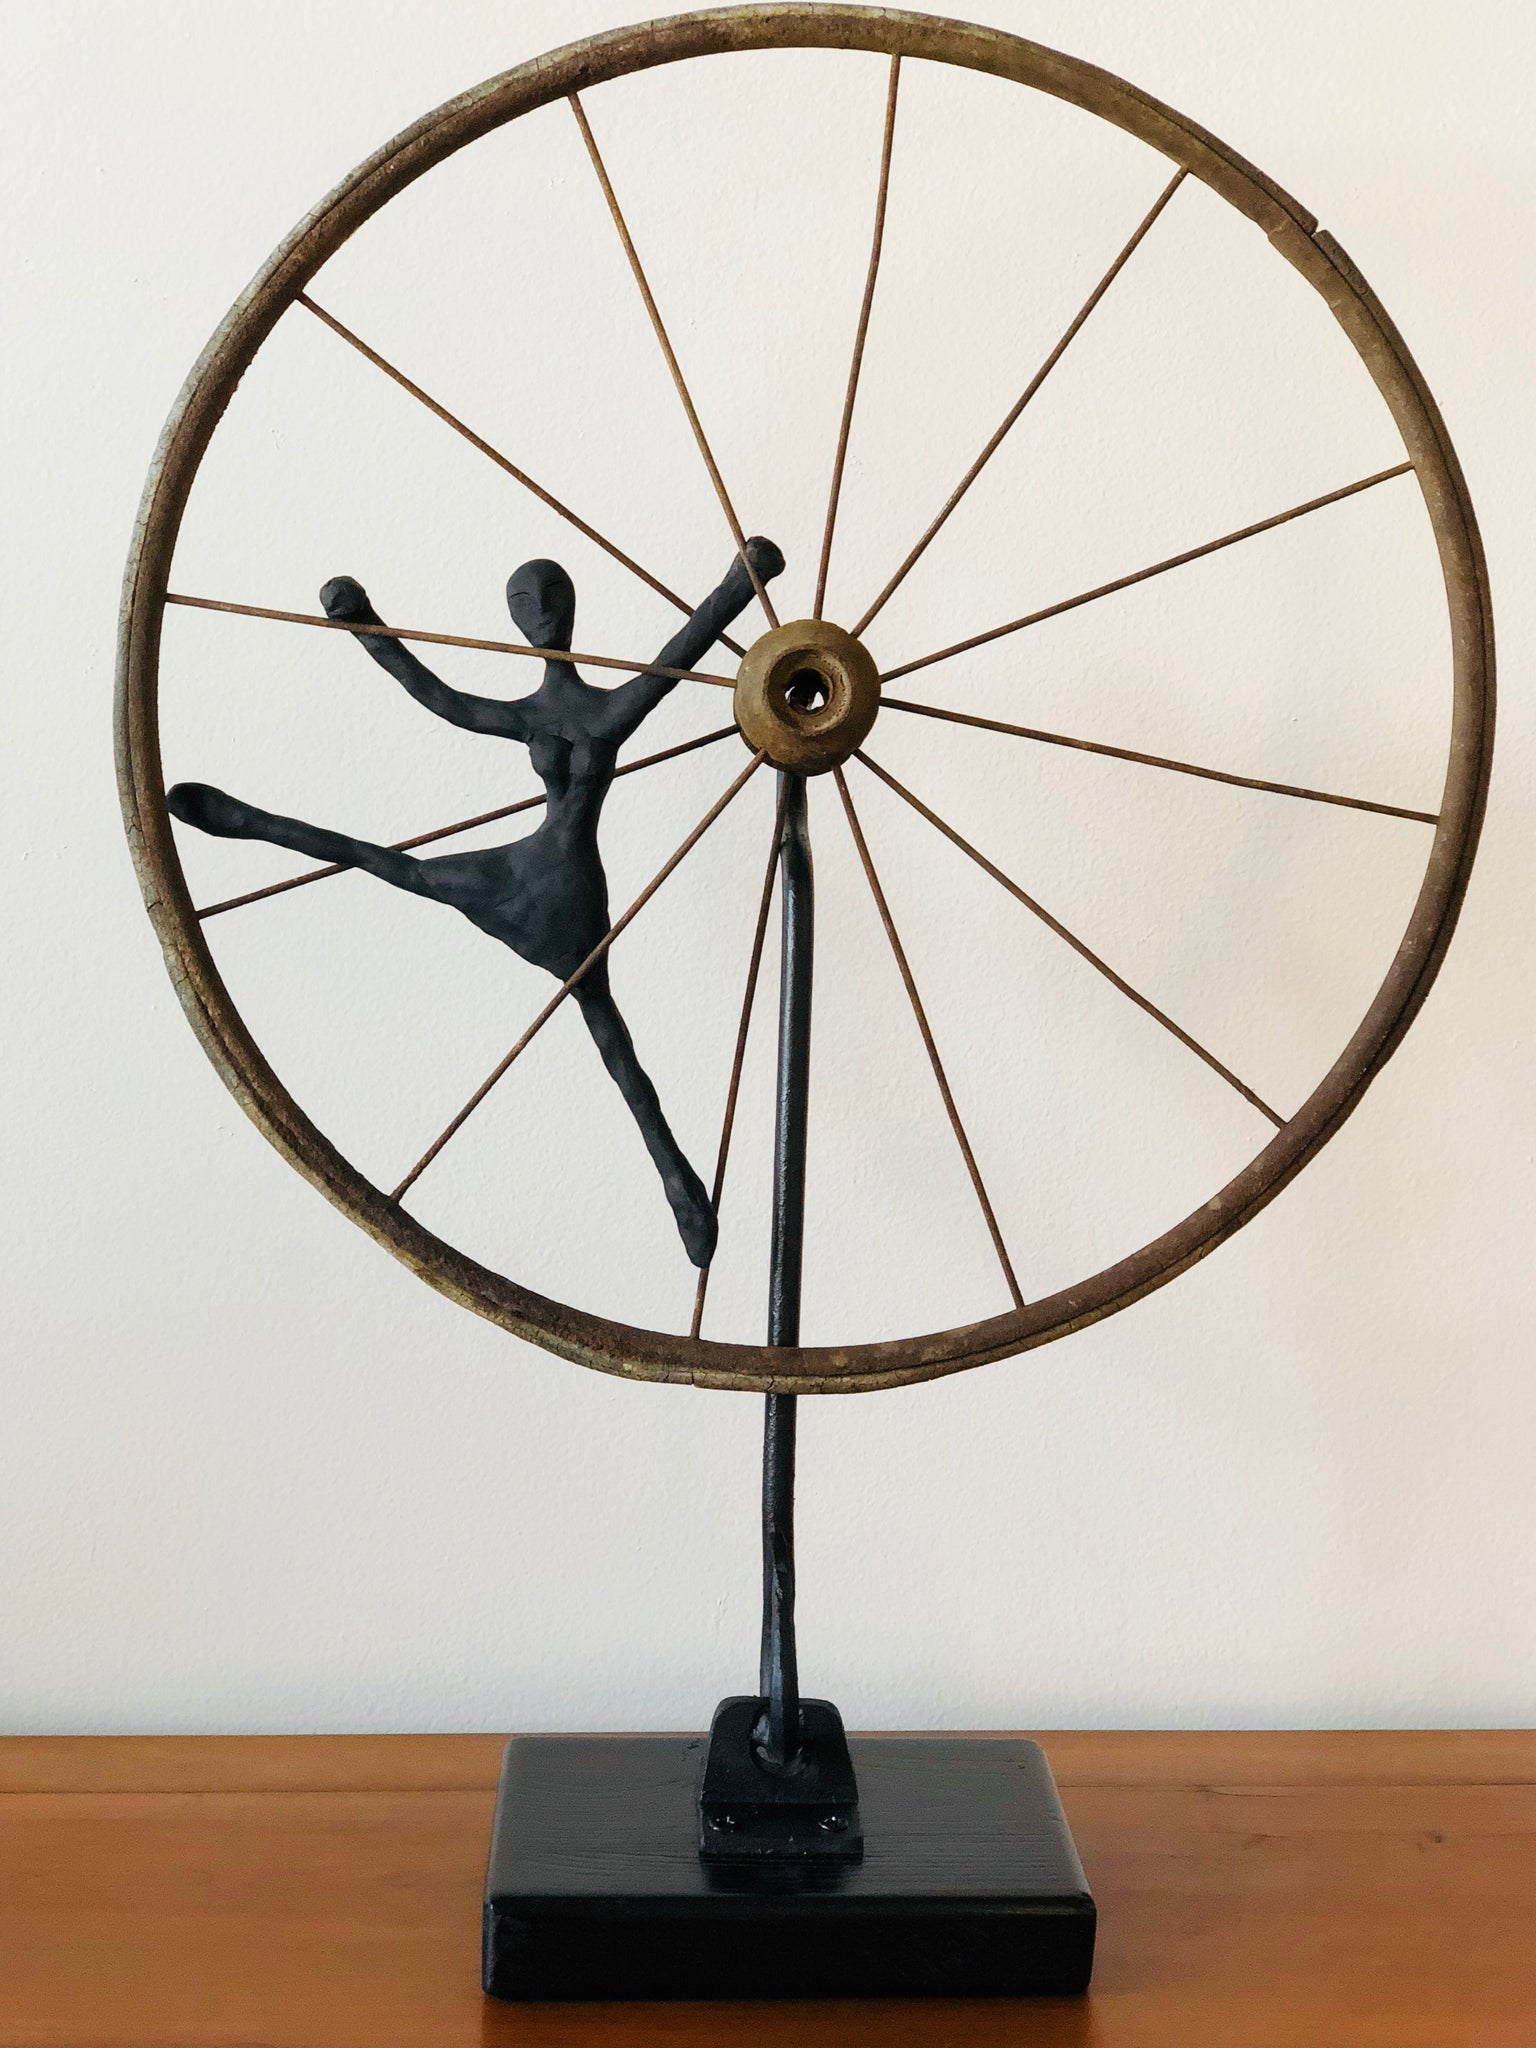 Dancing in the Wheel of Life